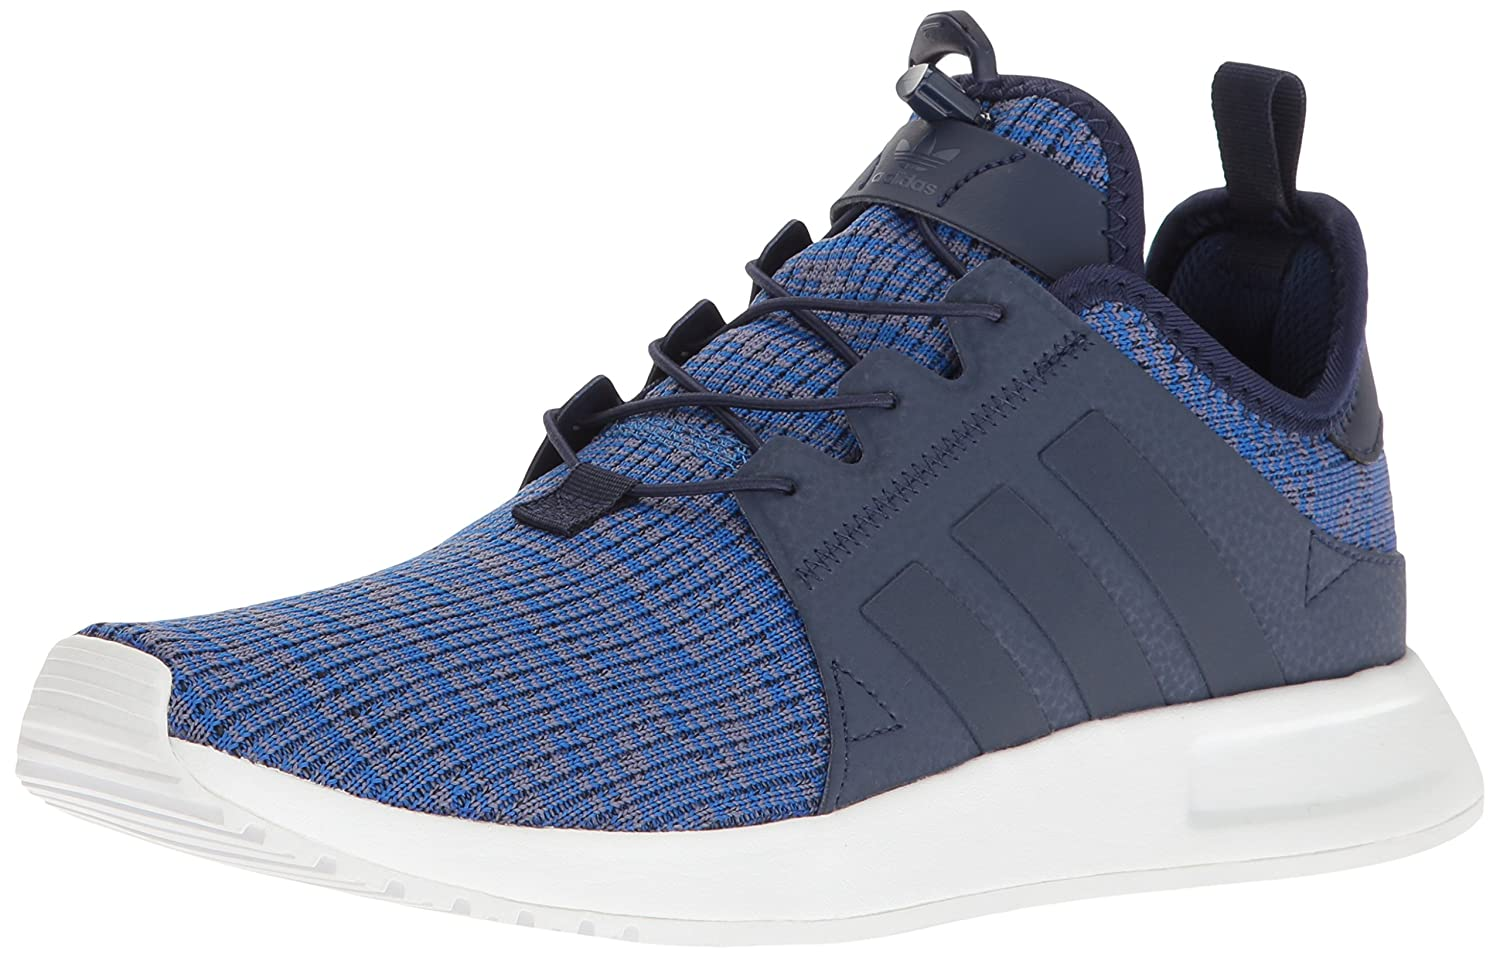 reputable site ed15b 292b5 adidas Originals Men's X_PLR Sneakers, Lightweight, Comfortable and Stylish  with Speed Lacing System for Quick On-Off Wear